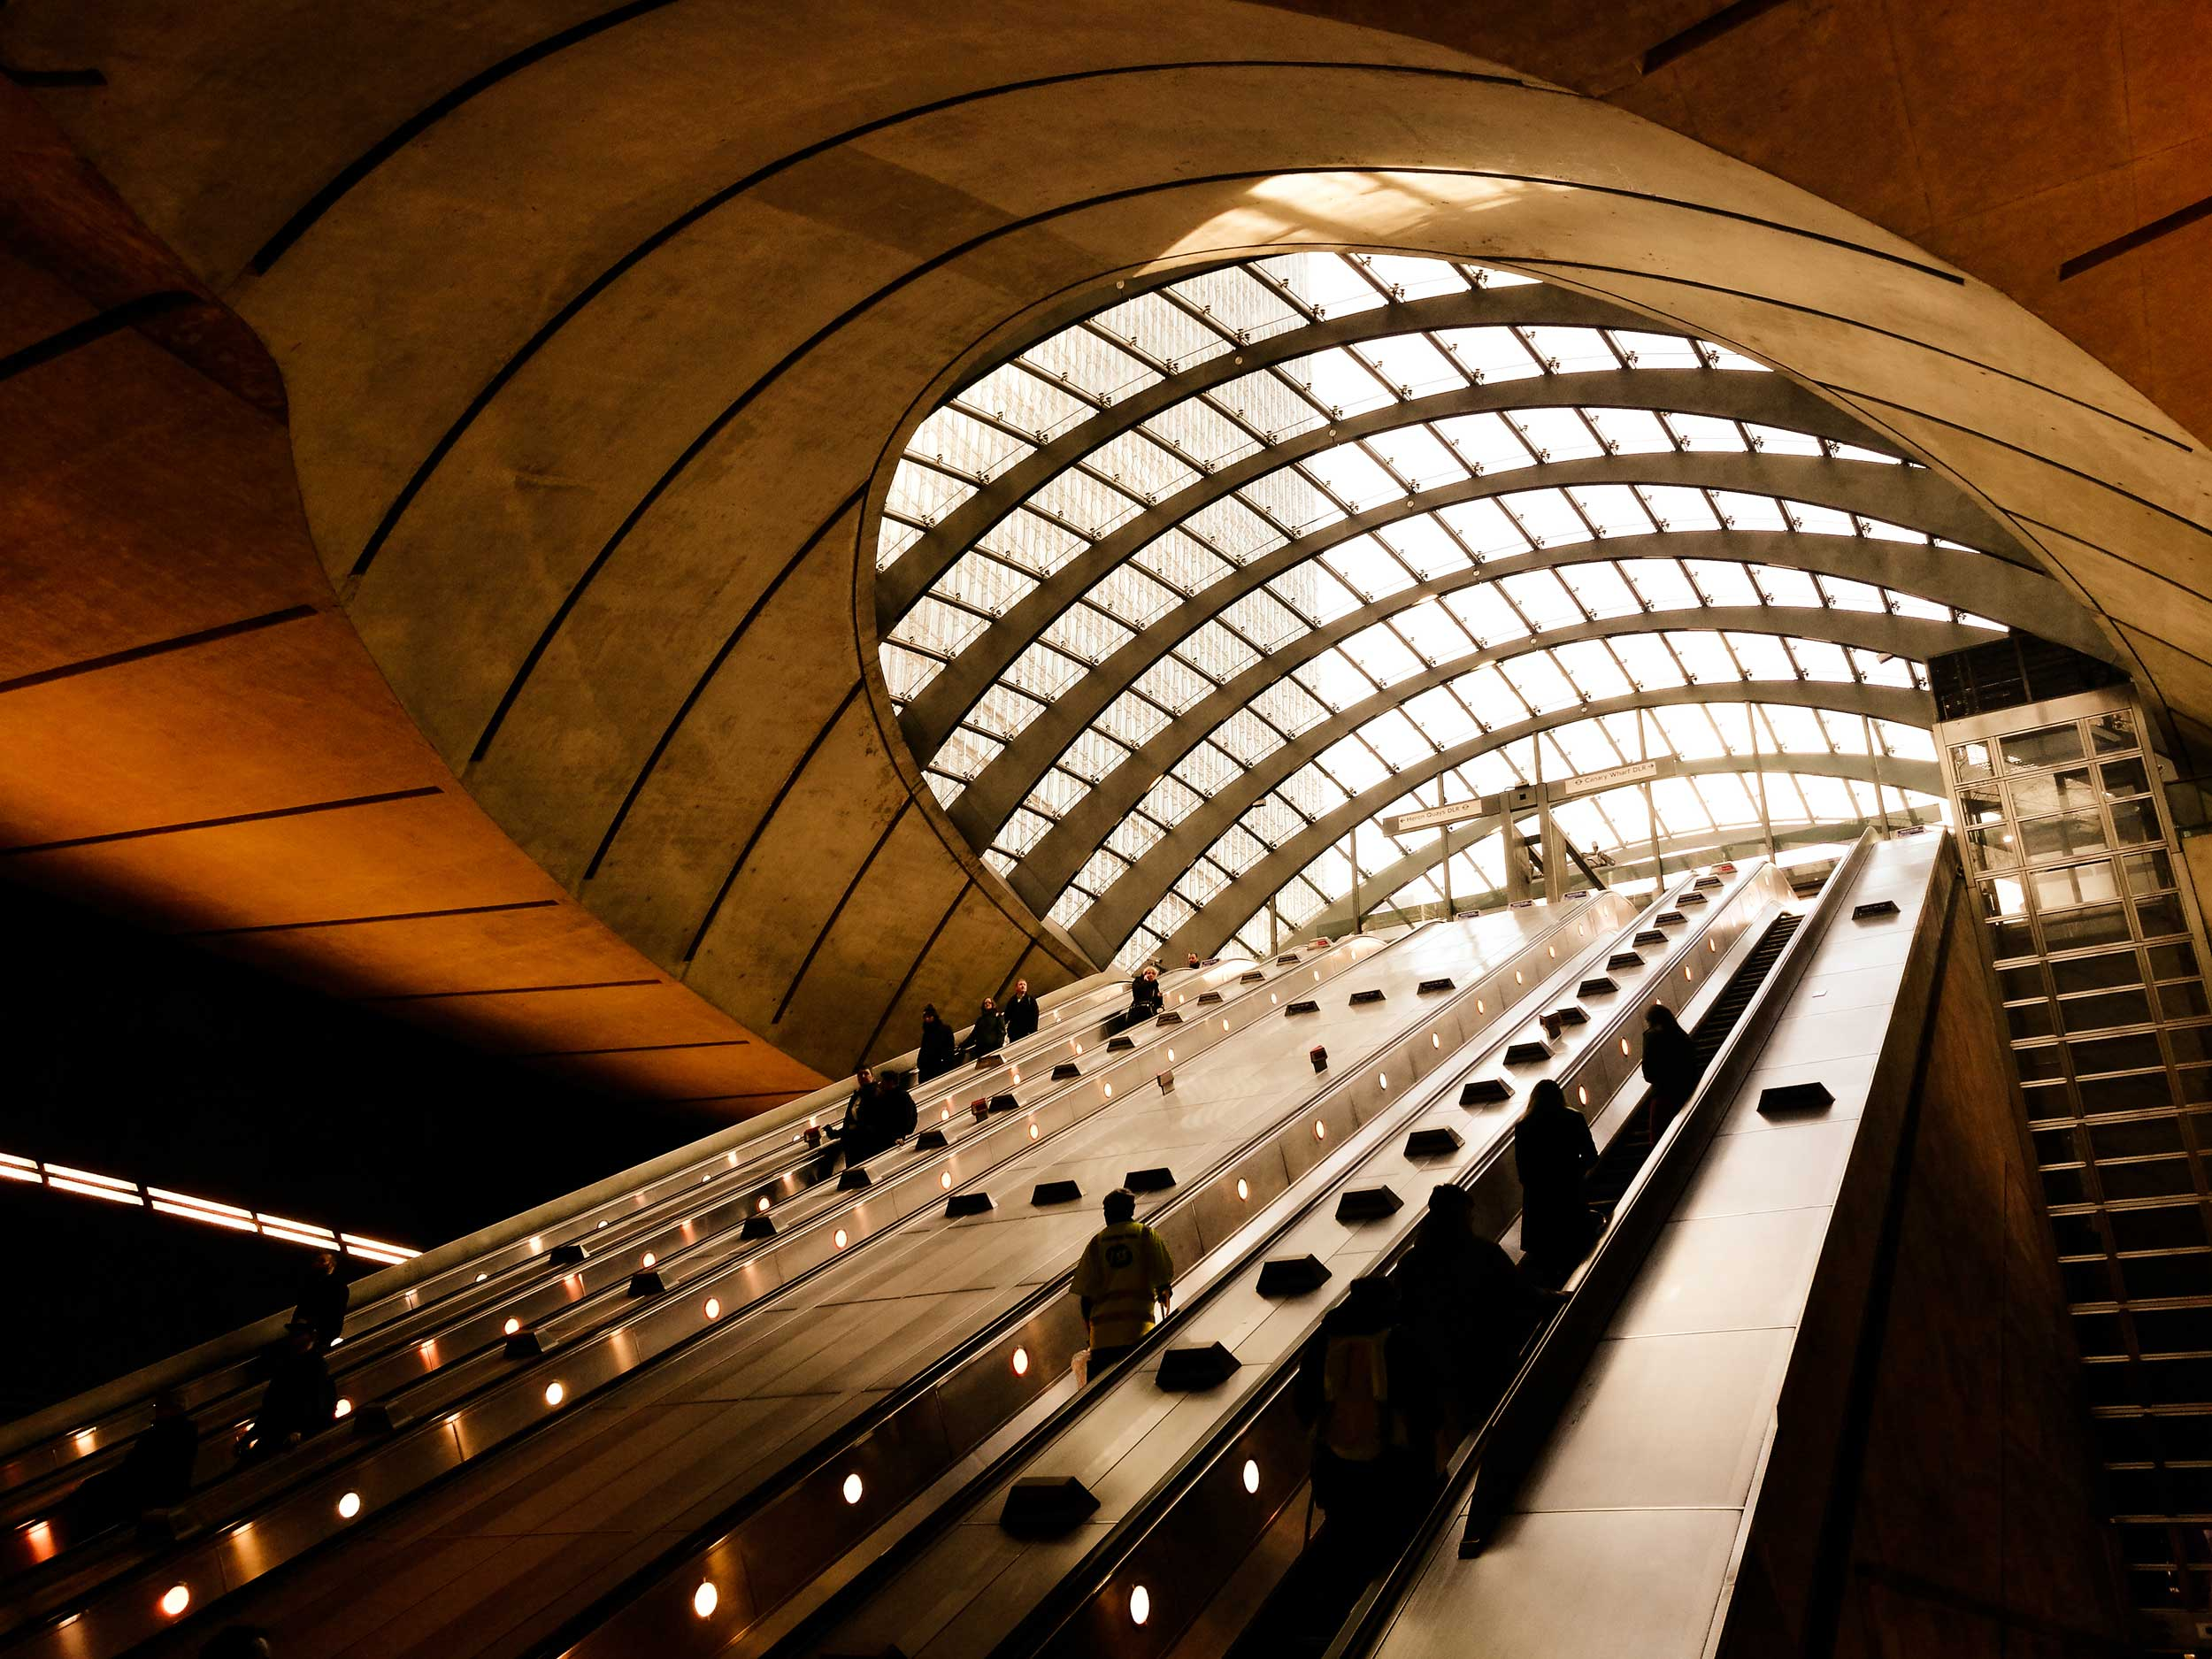 Escalators ascending towards a curved bank of glass in the ceiling, London